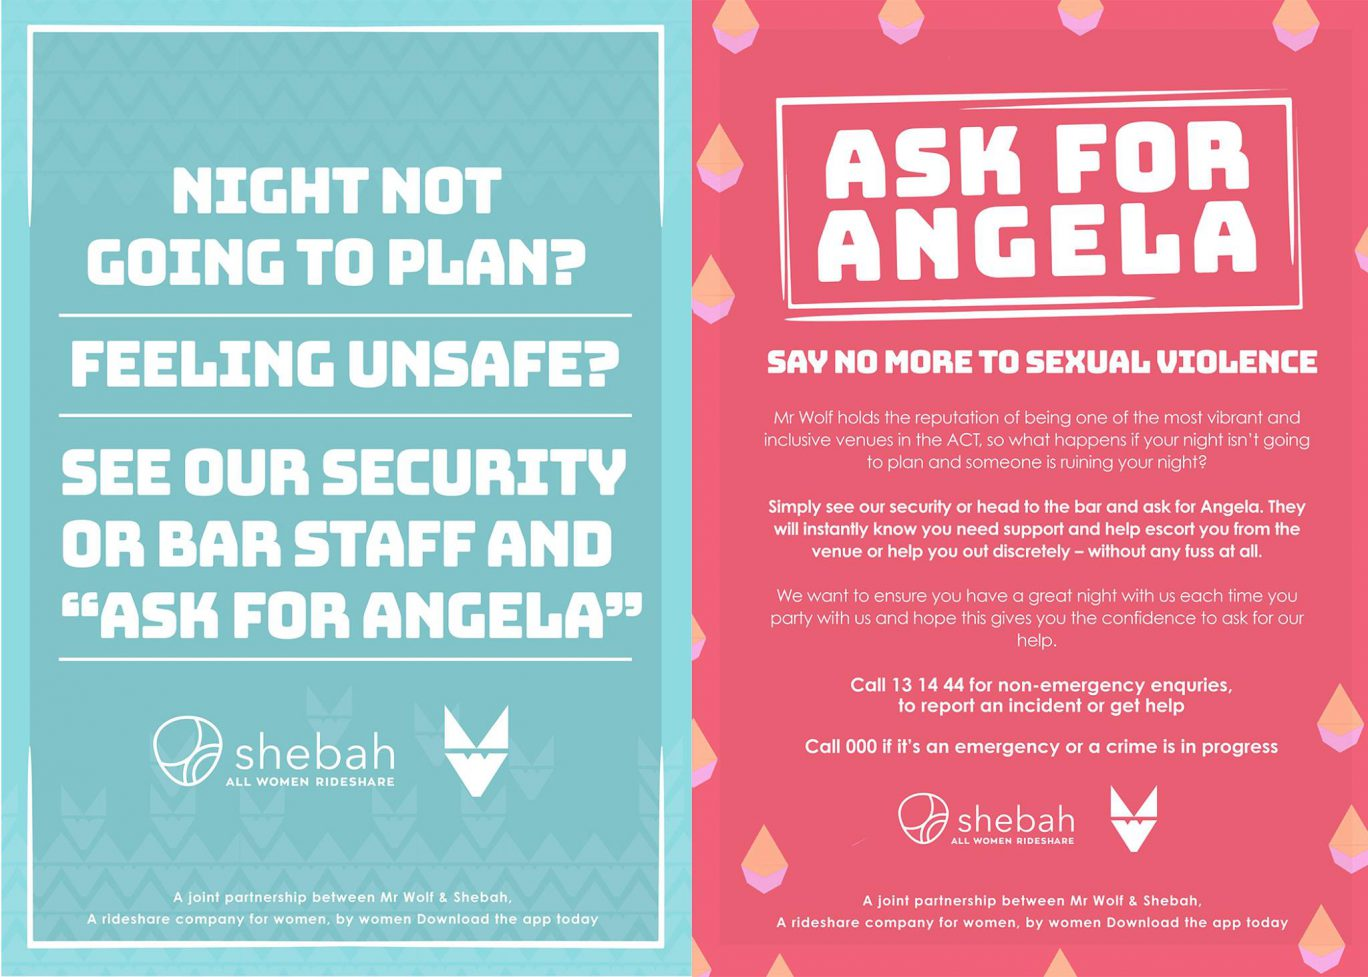 Ask for Angela - Patron Safety Campaign